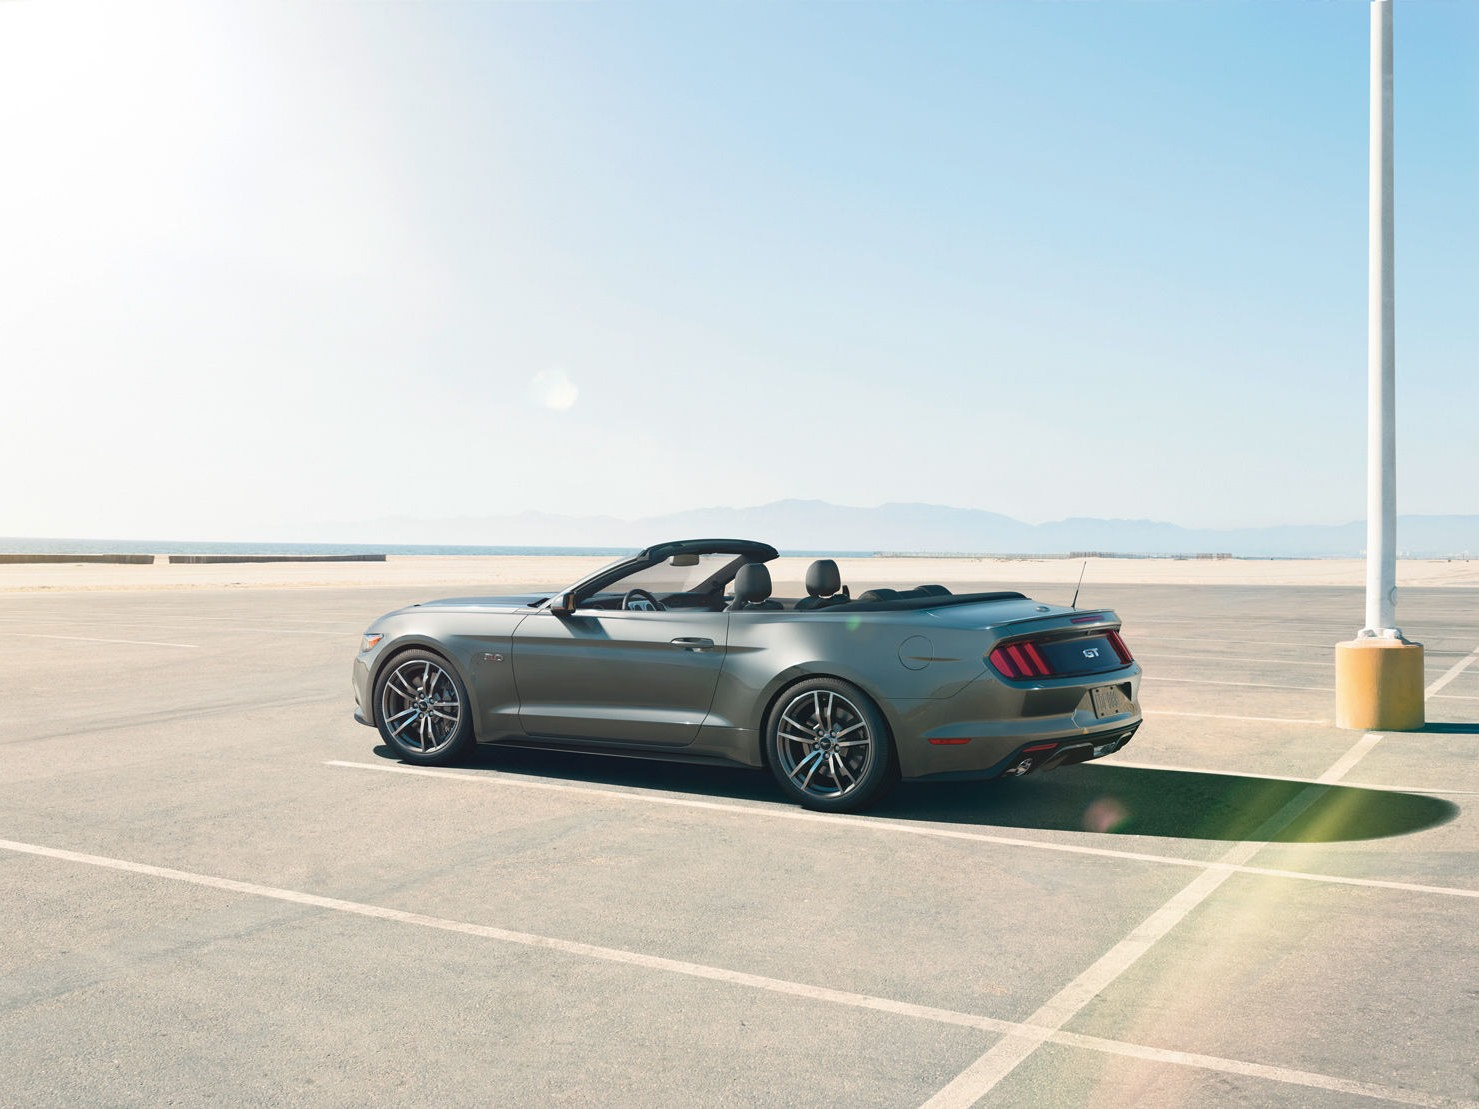 2014 - [Ford] Mustang VII - Page 6 2015-Ford-Mustang-Photos-32%25255B2%25255D